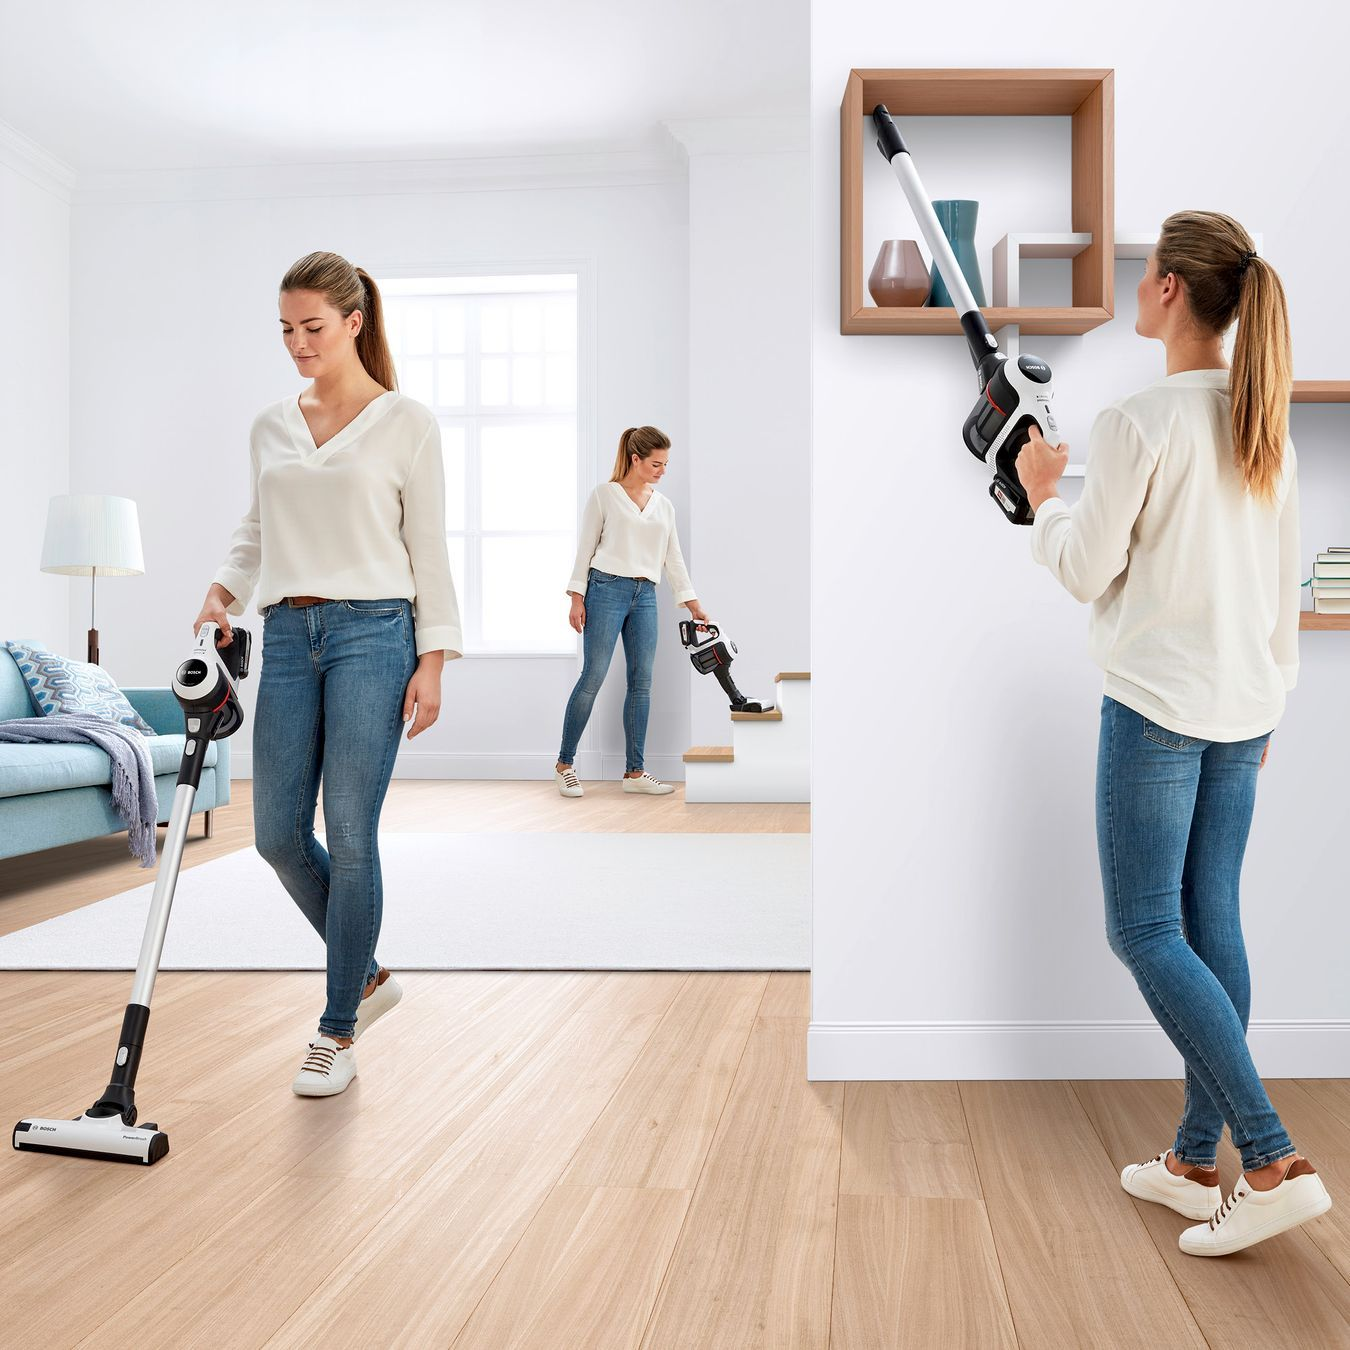 BOSCH BCS612GB Rechargeable vacuum cleaner in 2020